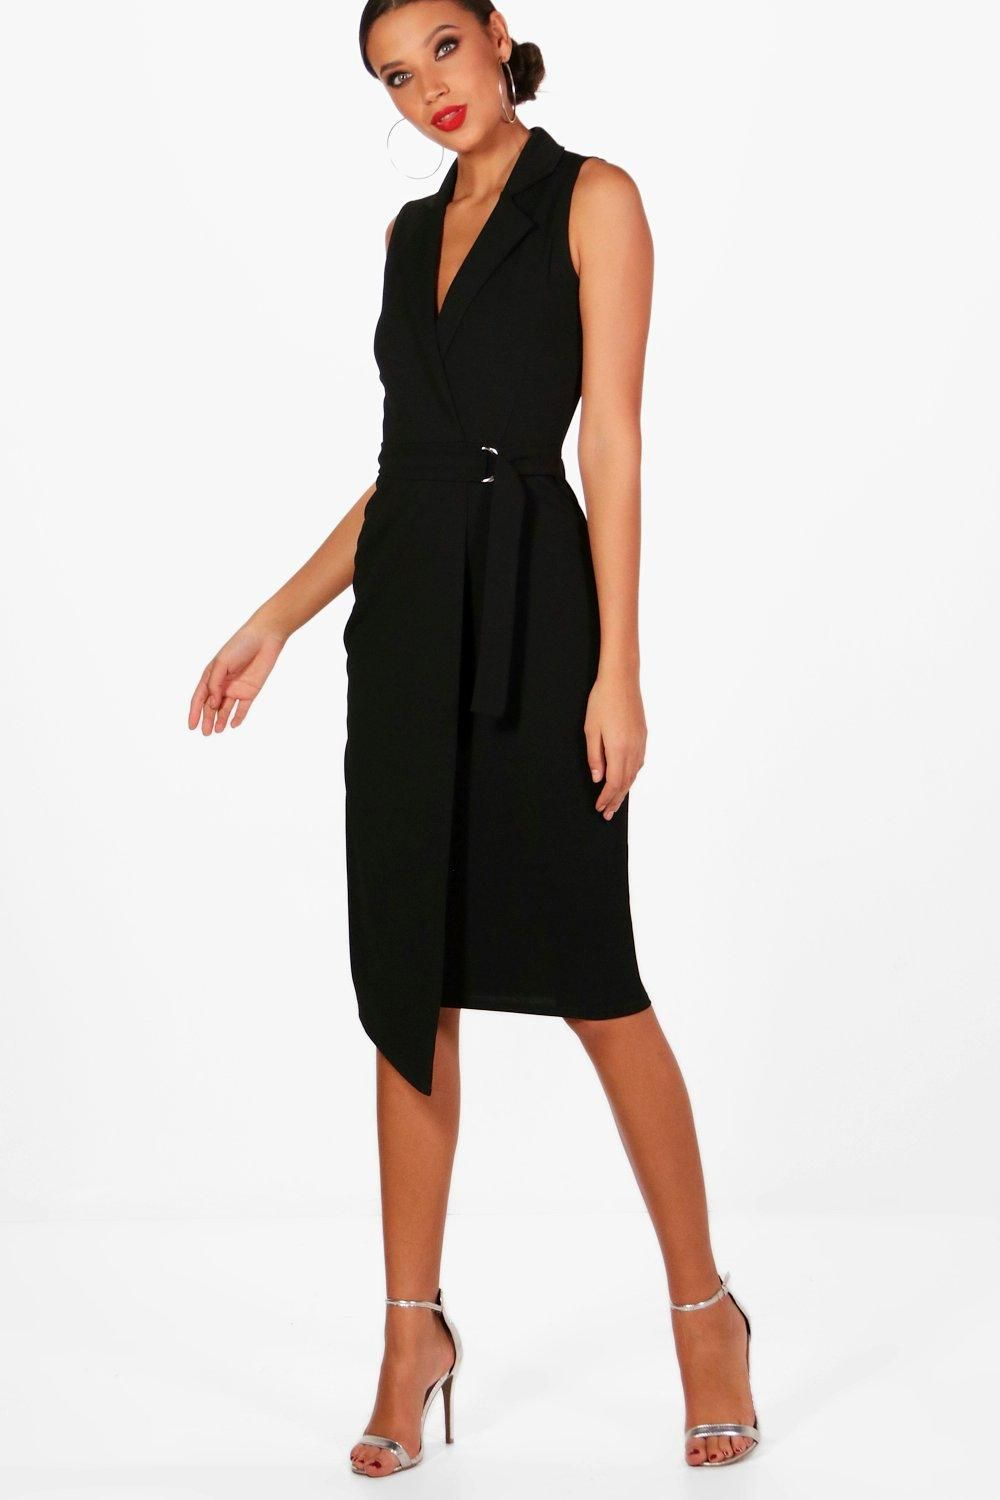 ffec224e2d8f Click here to find out about the Tall Sleeveless Blazer Dress from Boohoo,  part of our latest Tall Clothing collection ready to shop online today!